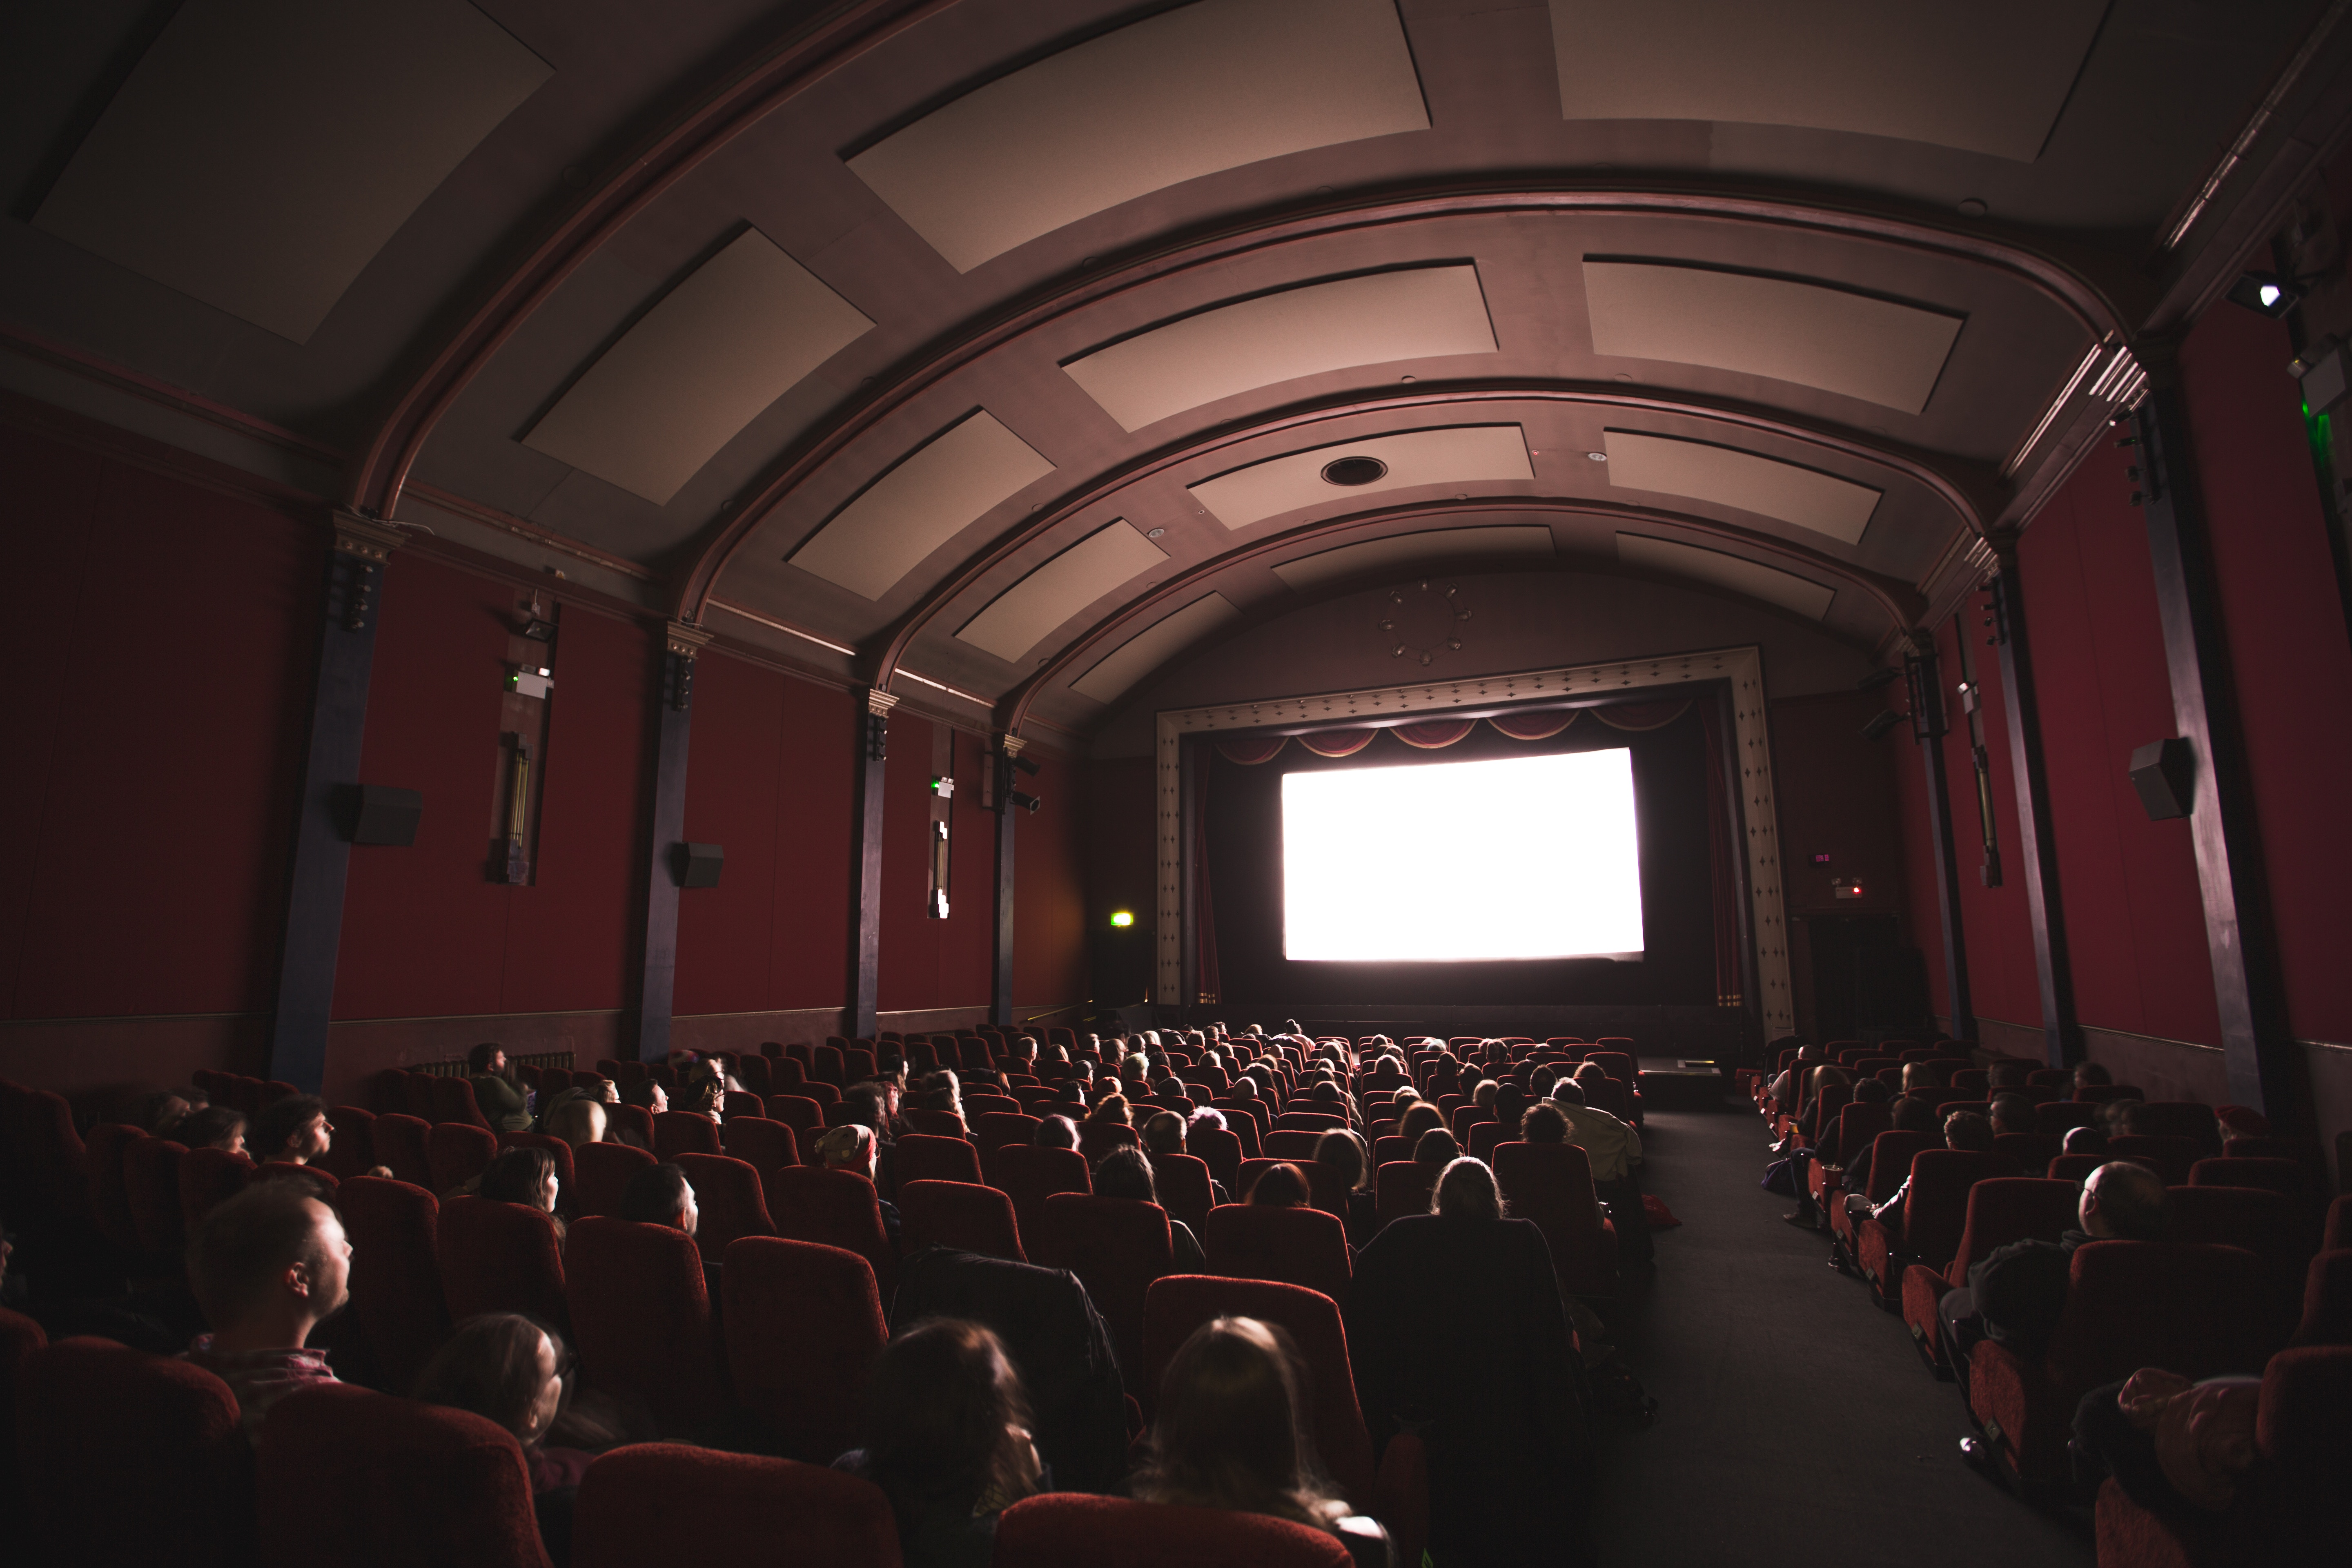 Movie theater with people sitting